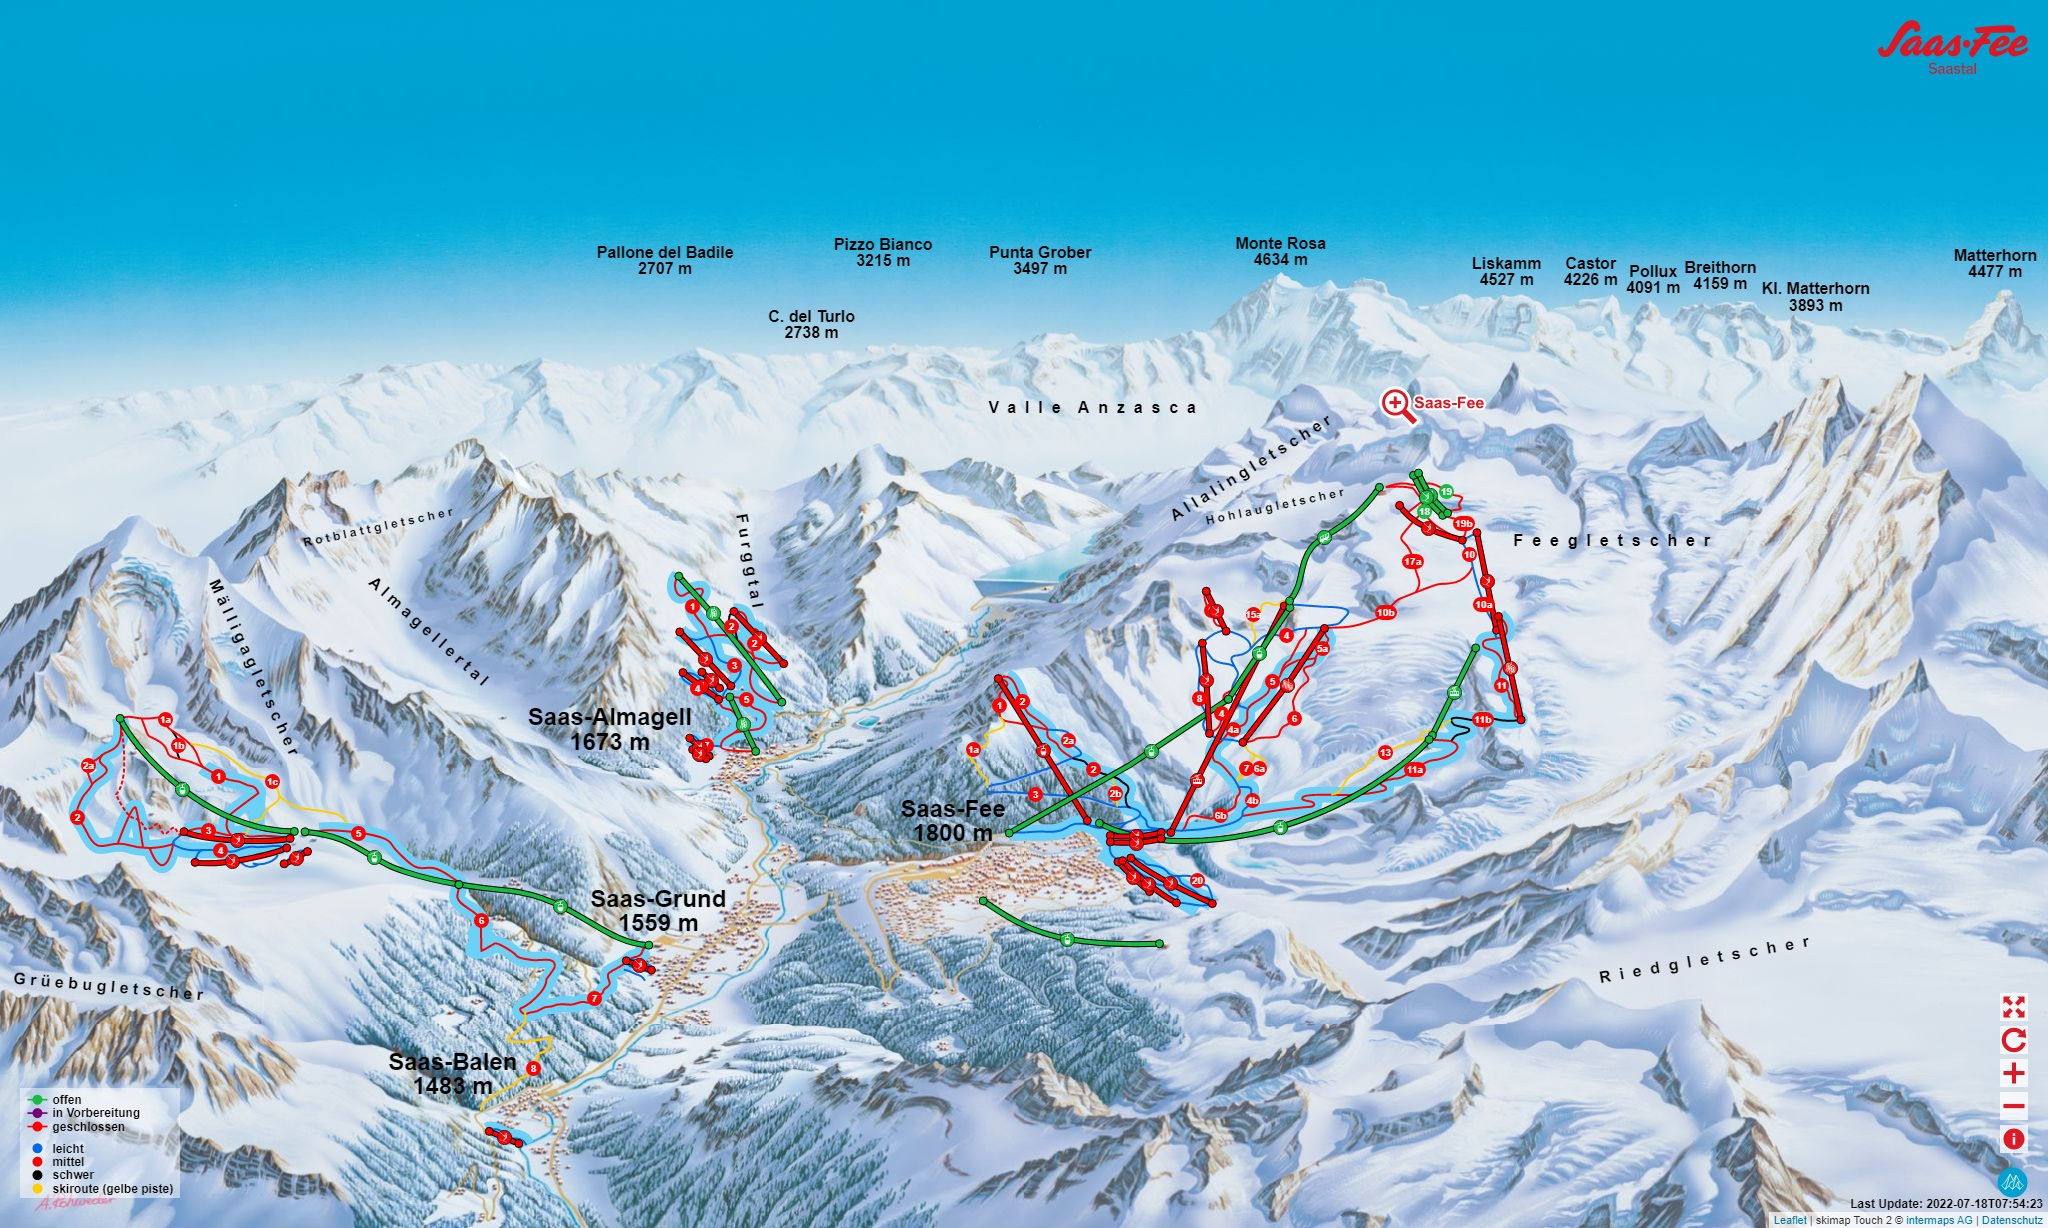 iSKI Ski Resort SaasFee closed